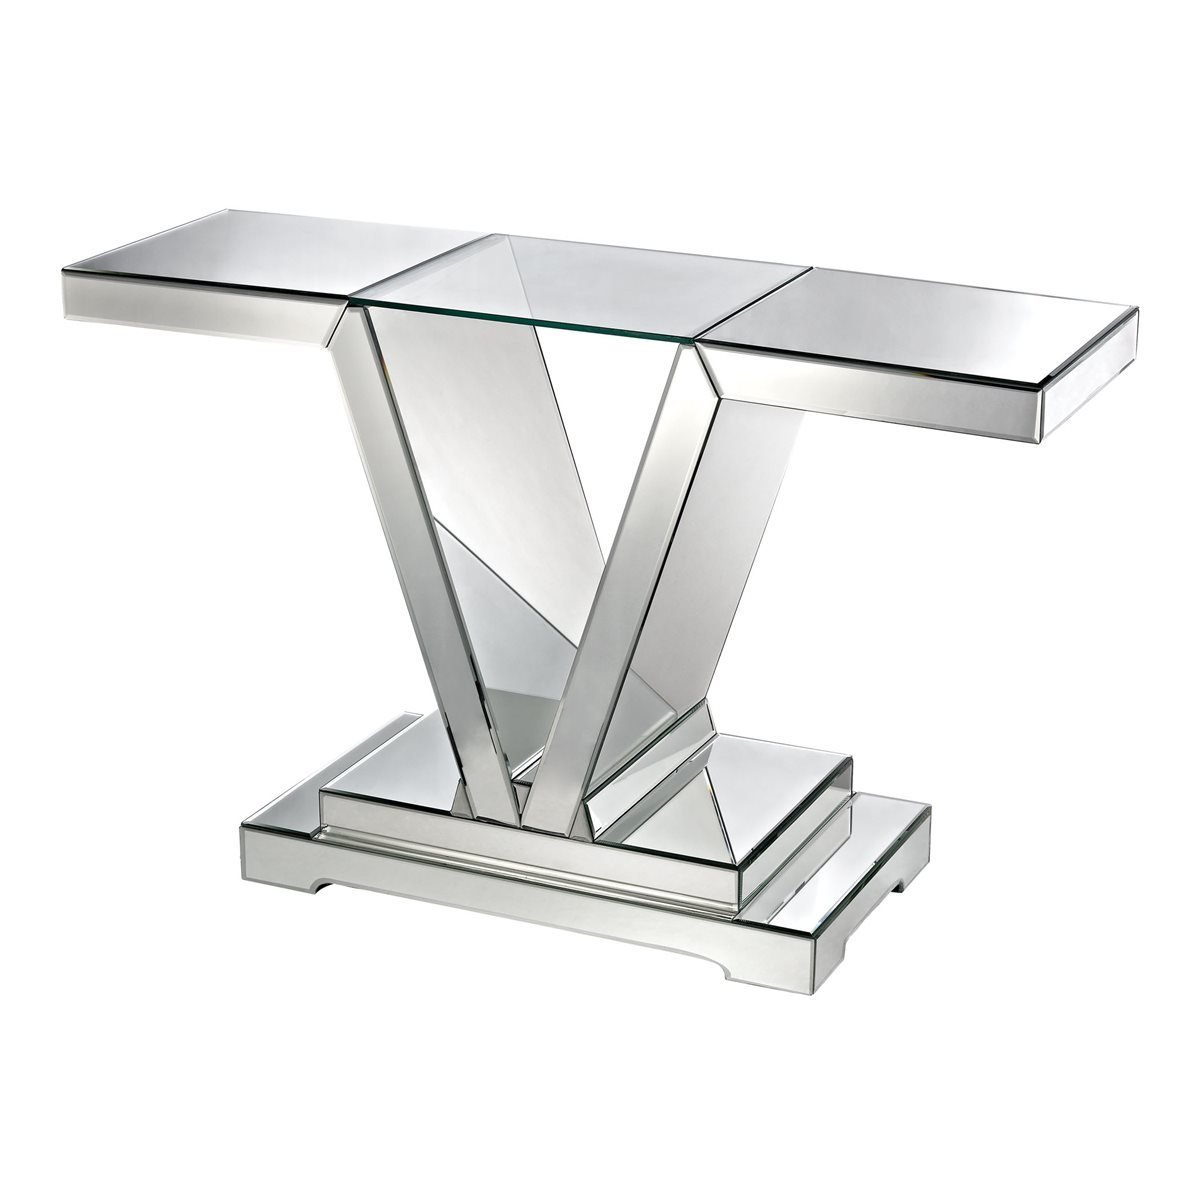 Mirrored Console Table with Glass Top